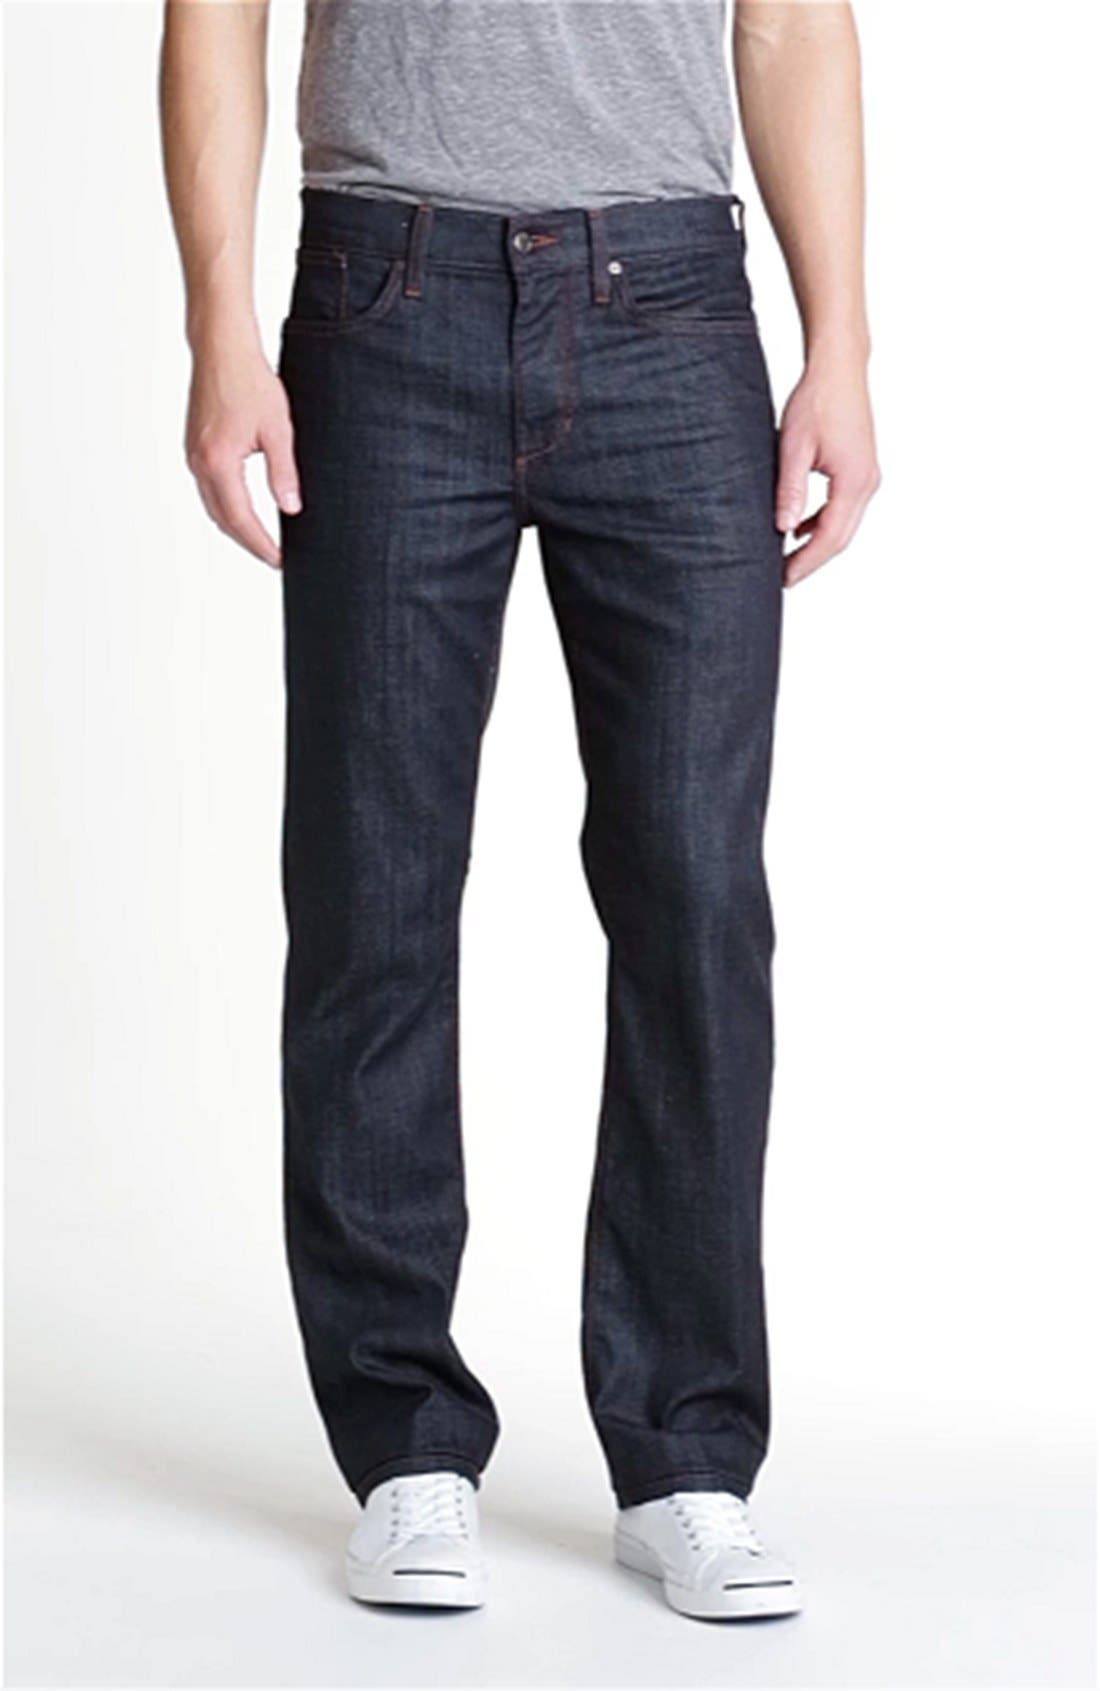 Classic Straight Leg Jeans,                             Alternate thumbnail 13, color,                             DAKOTA